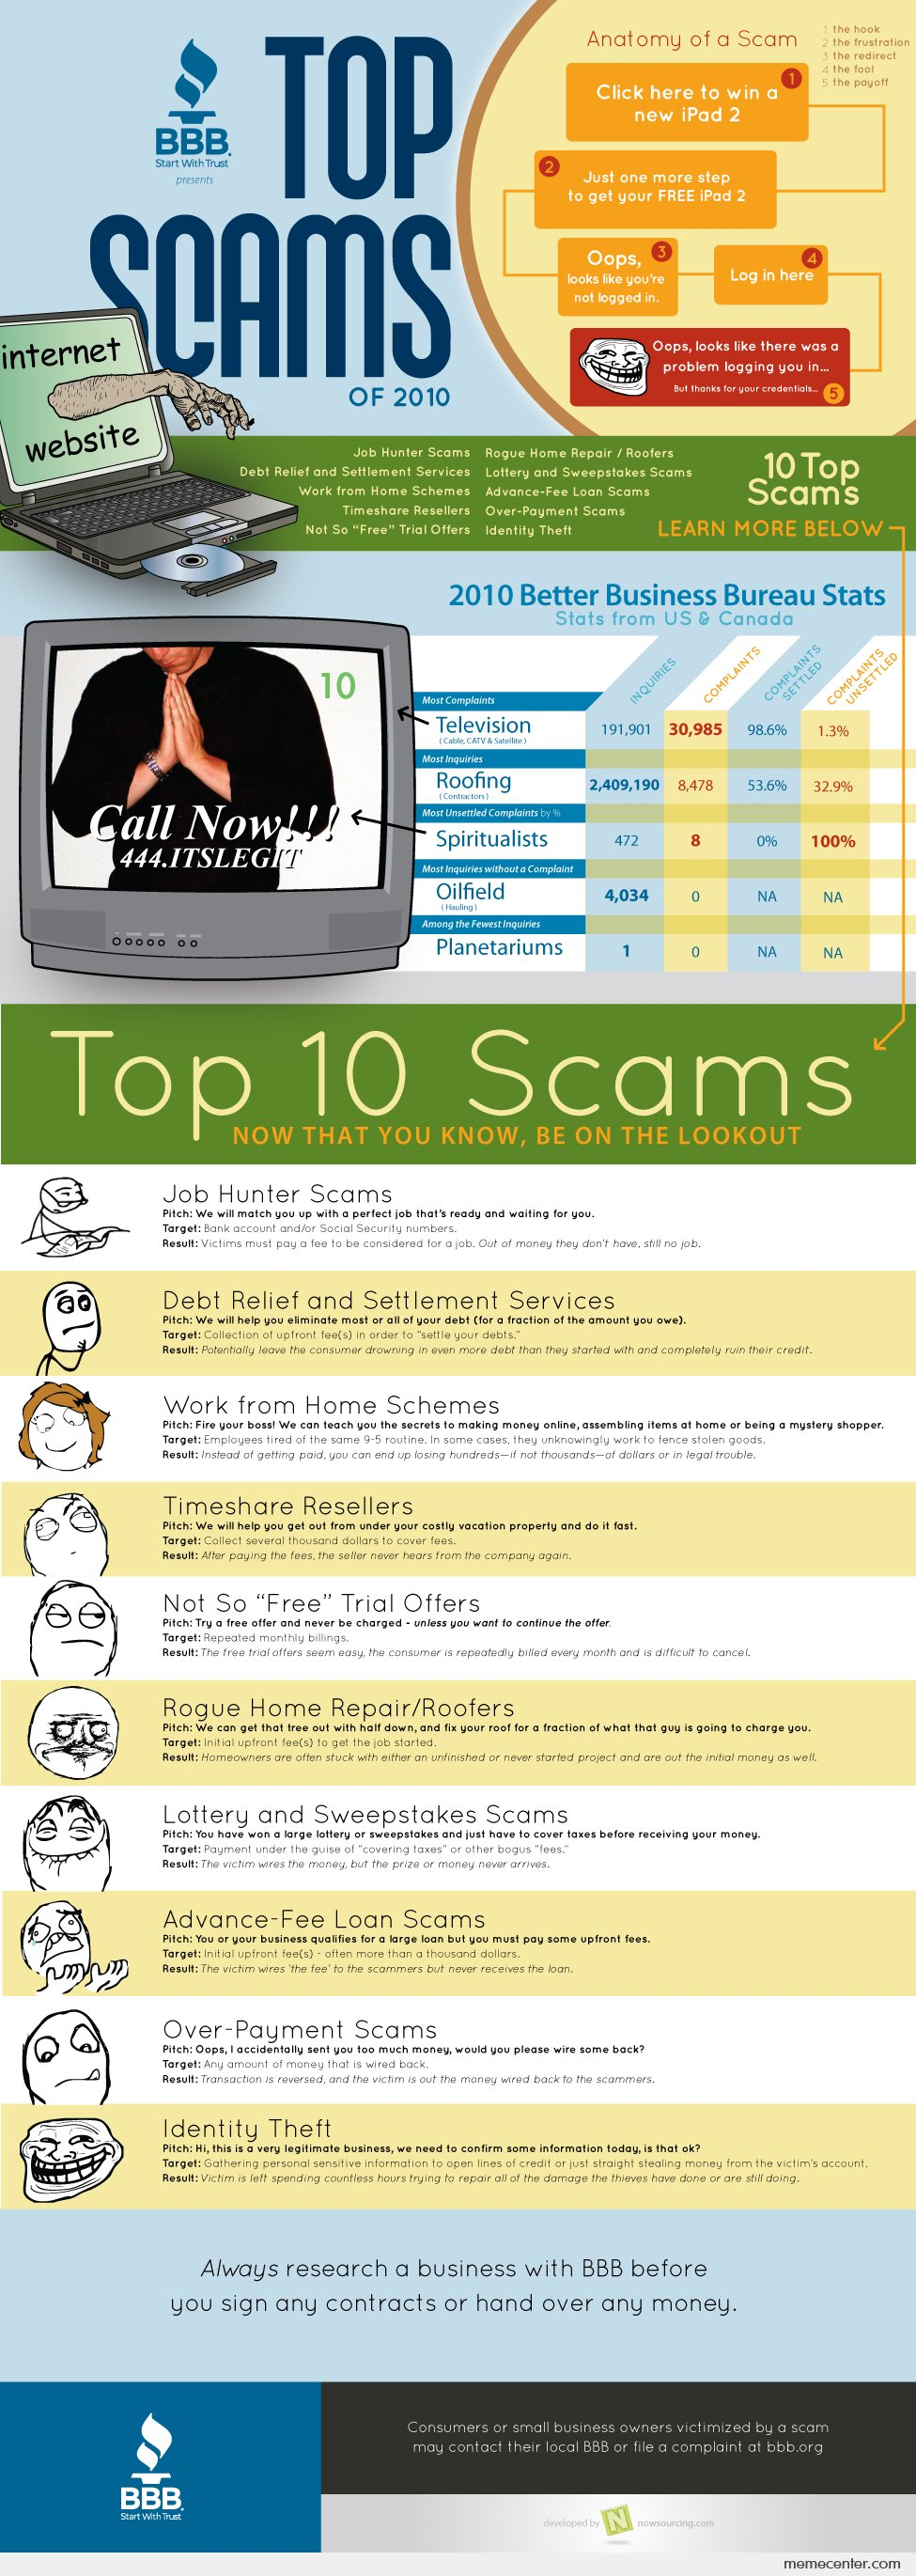 Top Scams